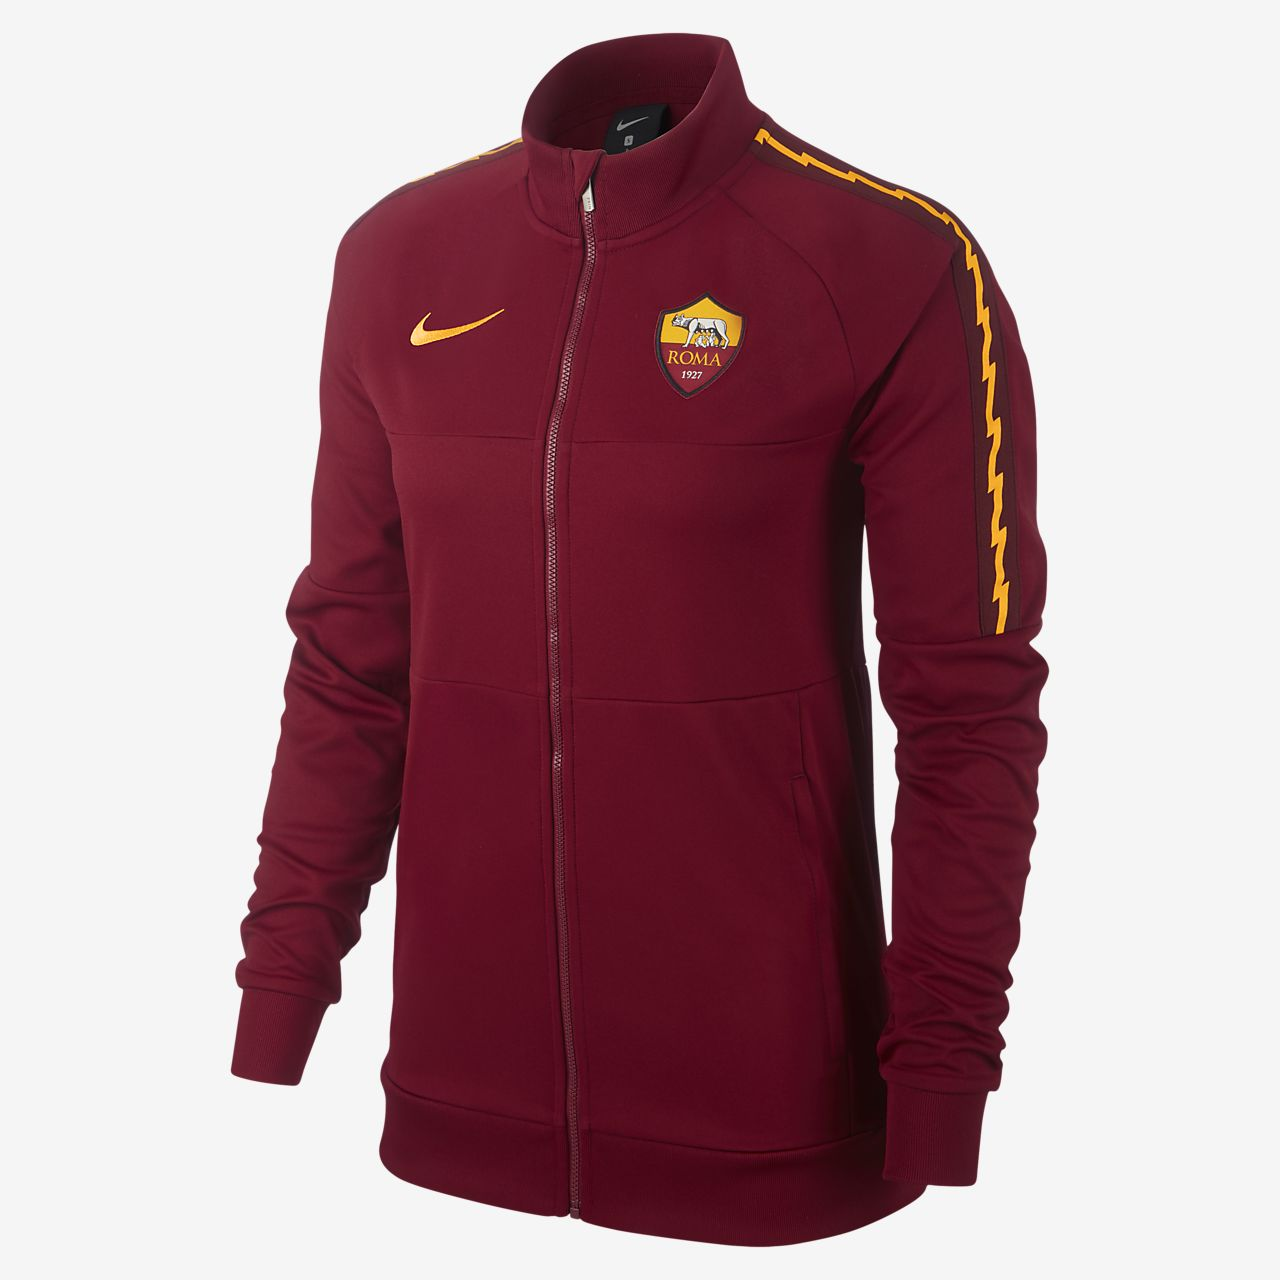 Giacca A.S. Roma - Donna